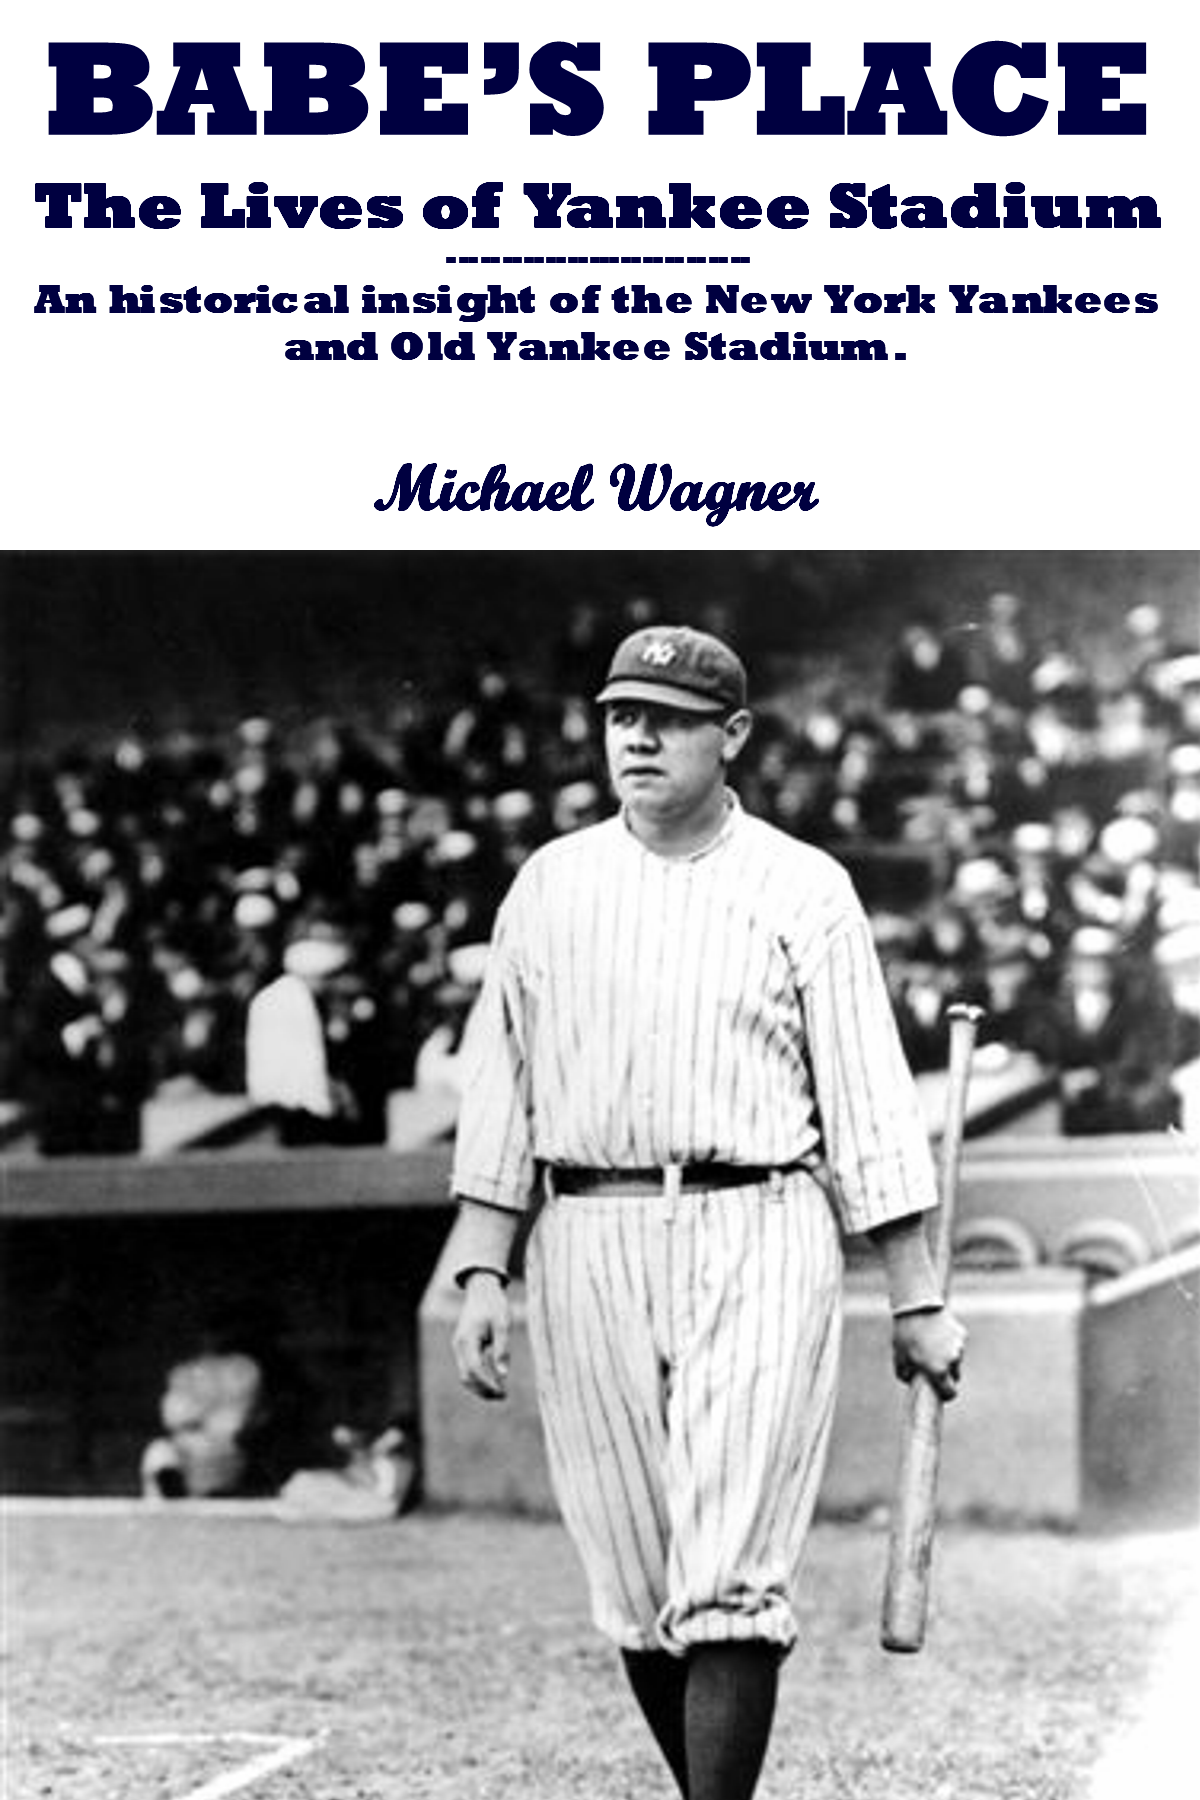 History of the new york yankees